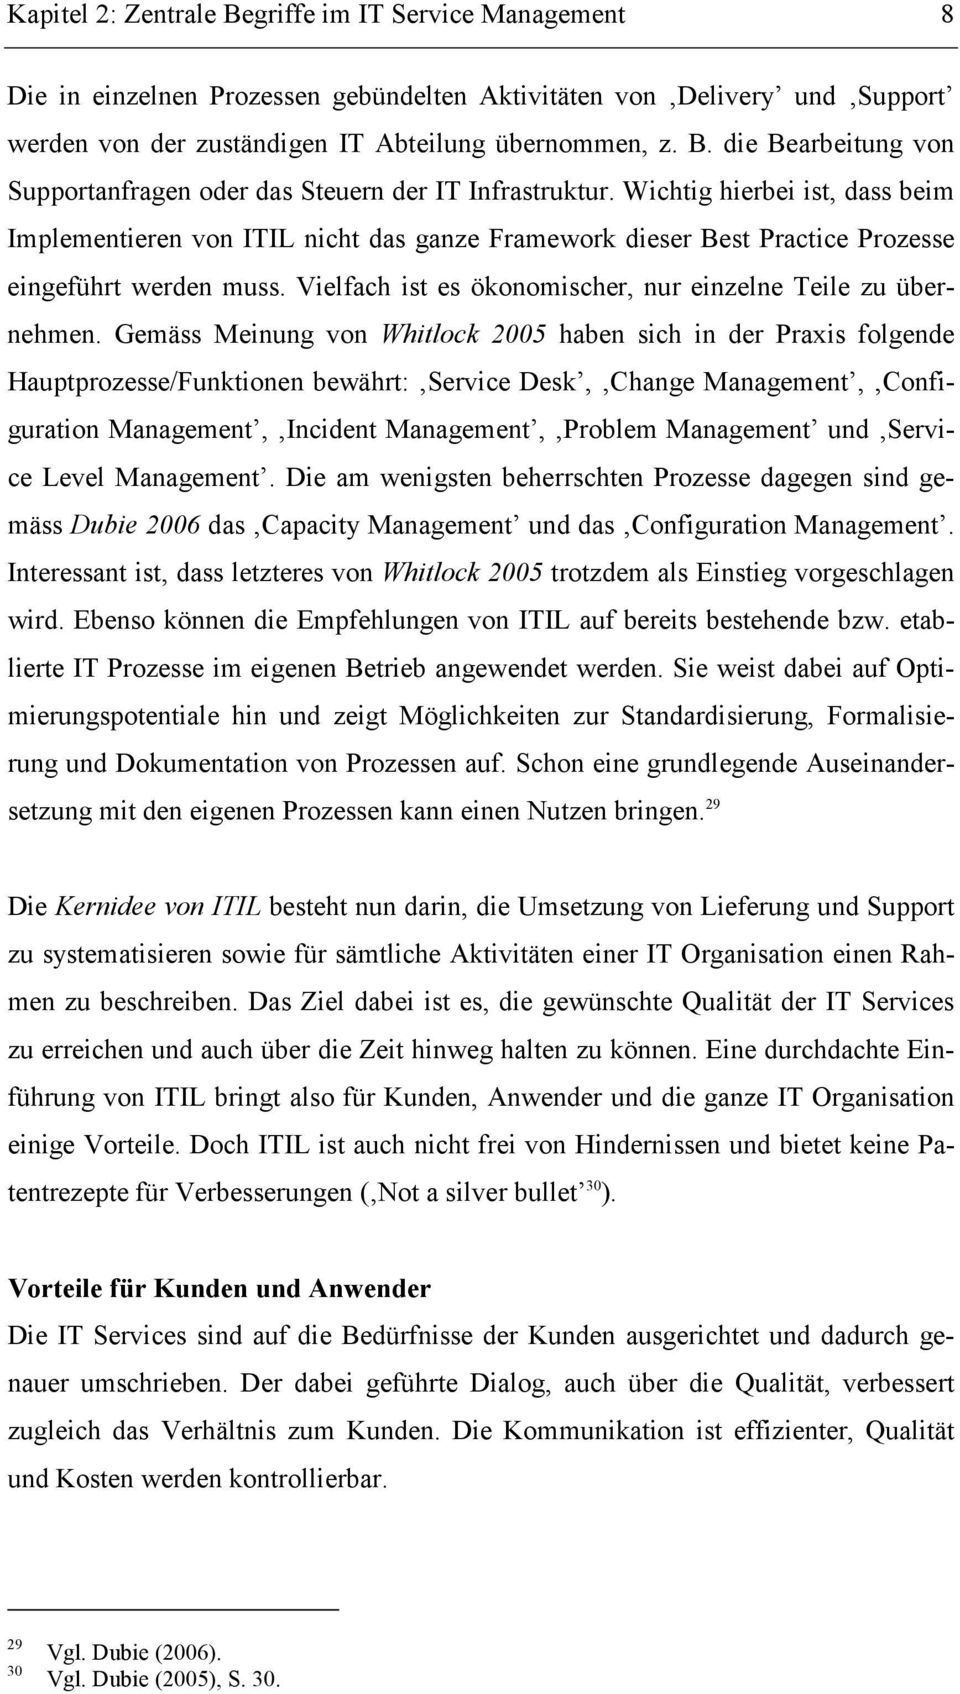 Gemäss Meinung von Whitlock 2005 haben sich in der Praxis folgende Hauptprozesse/Funktionen bewährt: Service Desk, Change Management, Configuration Management, Incident Management, Problem Management